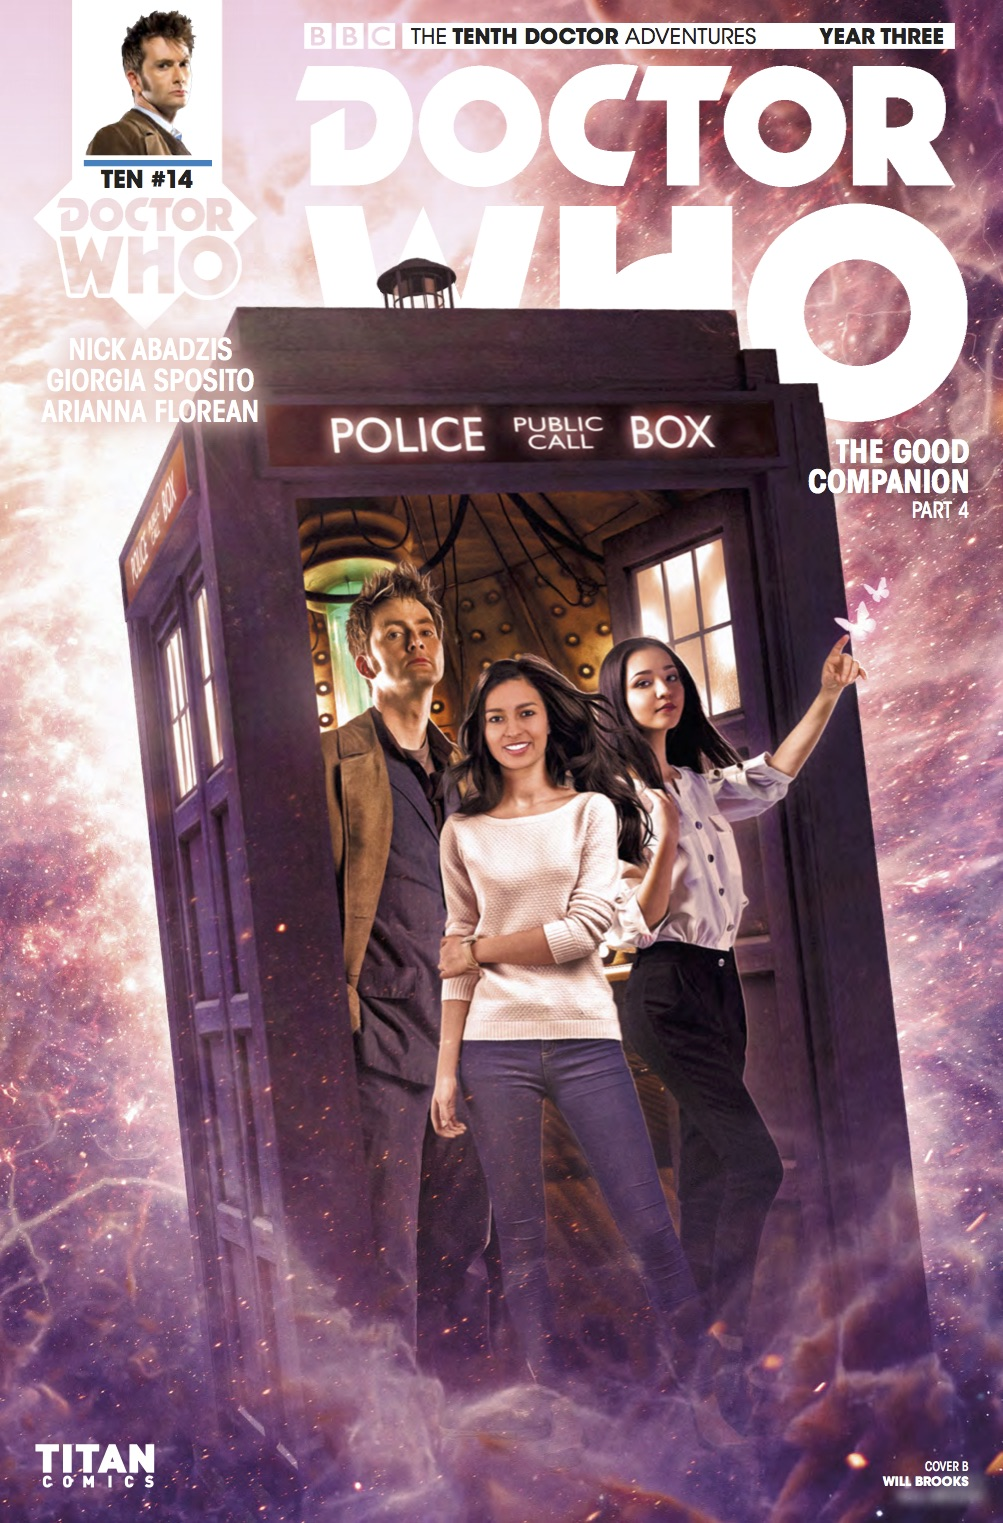 Doctor Who: The Tenth Doctor Year Three #14 - Cover B (Credit: Titan )